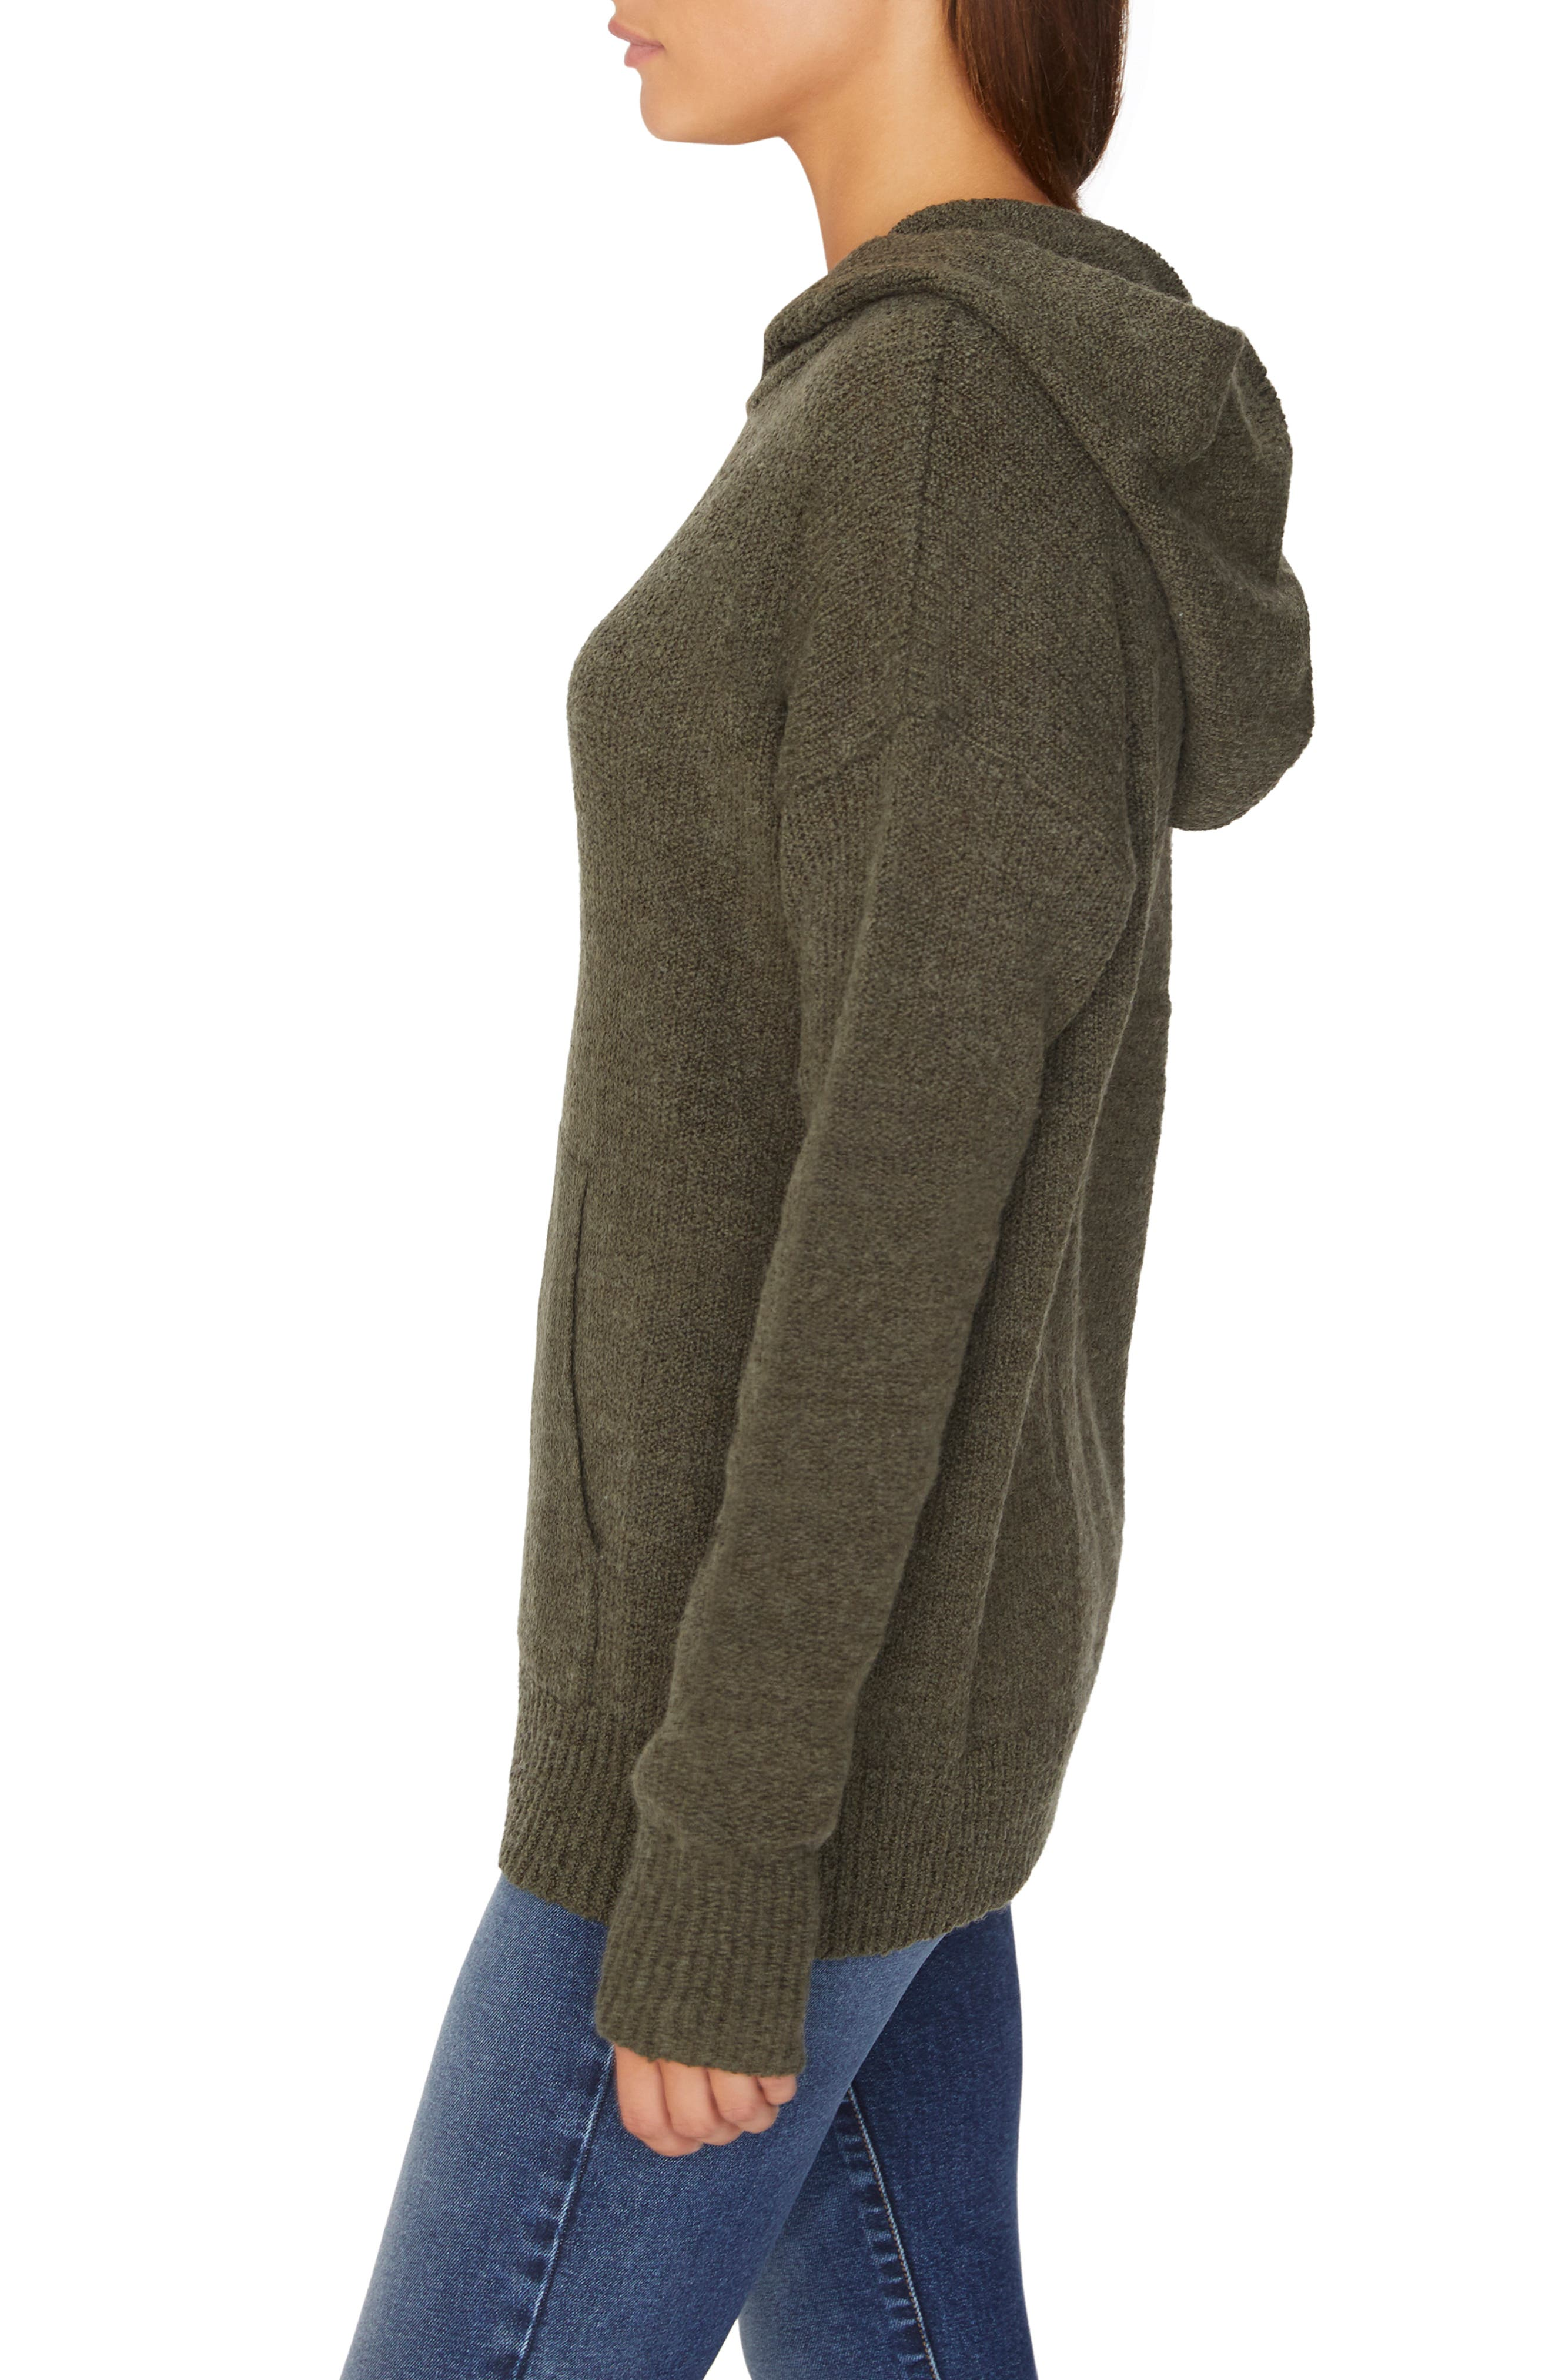 Sunday Morning Wool Blend Sweater Hoodie,                             Alternate thumbnail 3, color,                             HEATHER PROSPERITY GREEN